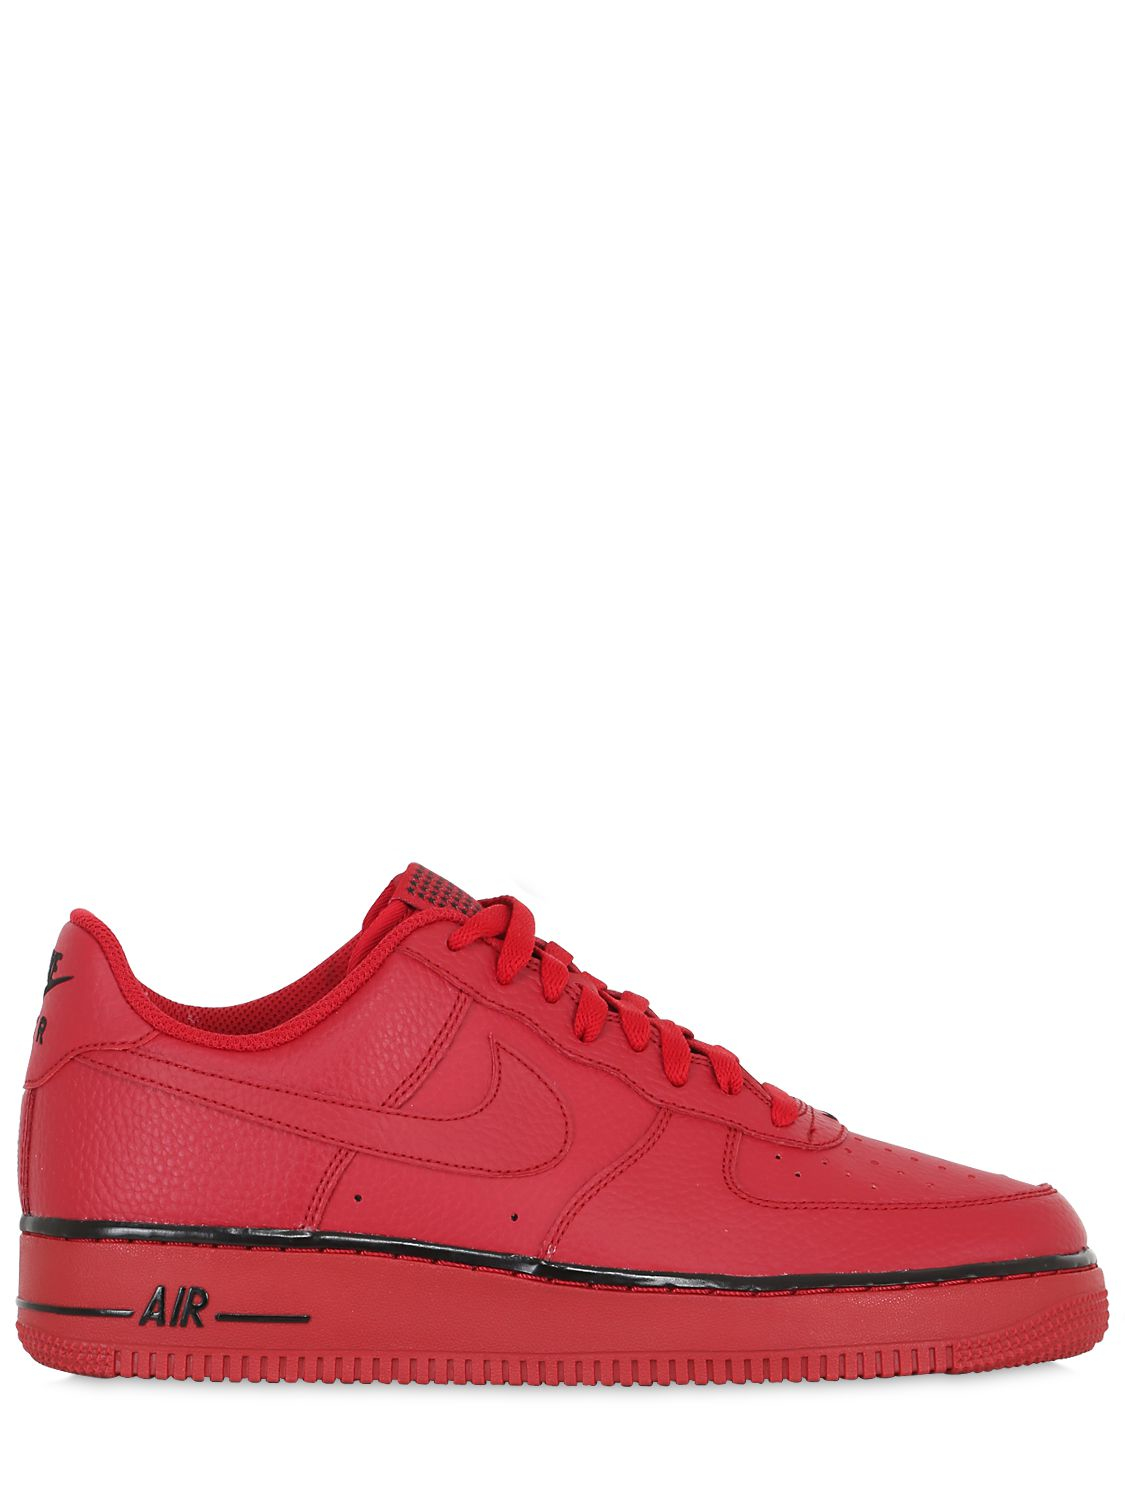 nike air force 1 faux leather sneakers in red for men lyst. Black Bedroom Furniture Sets. Home Design Ideas